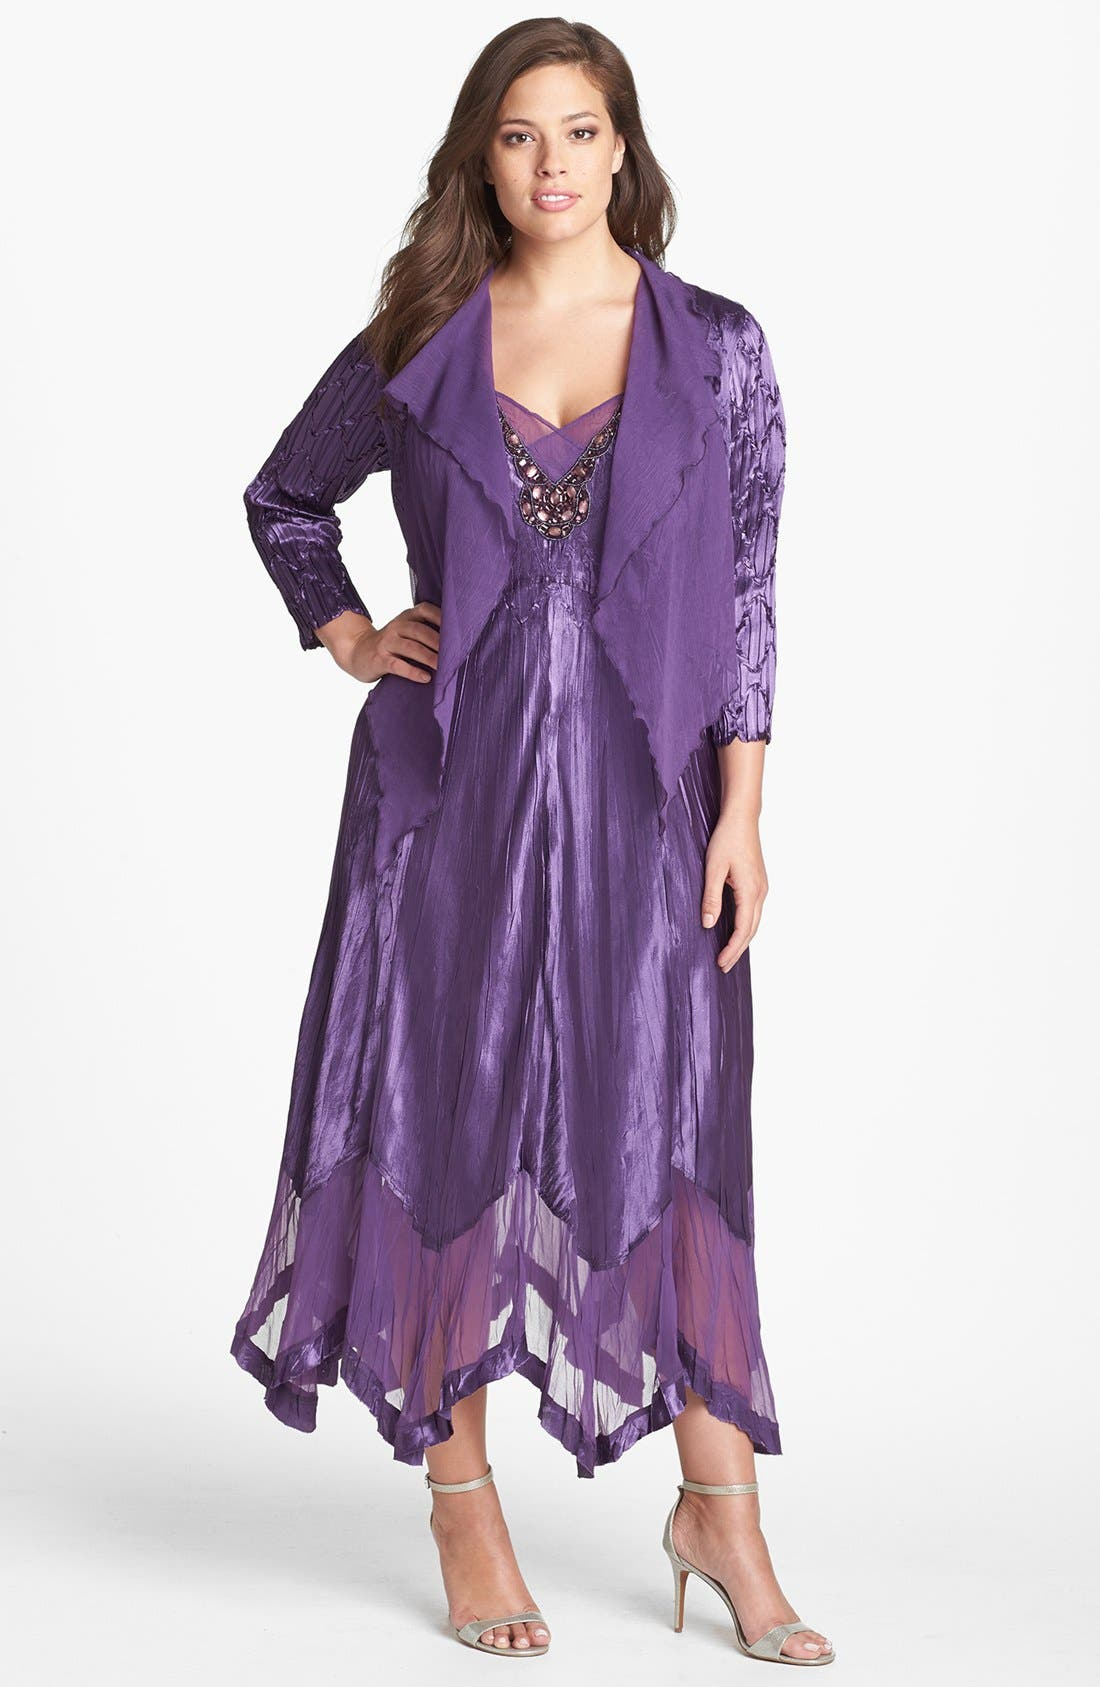 Main Image - Komarov Chiffon Trim Charmeuse Dress & Jacket (Plus Size)